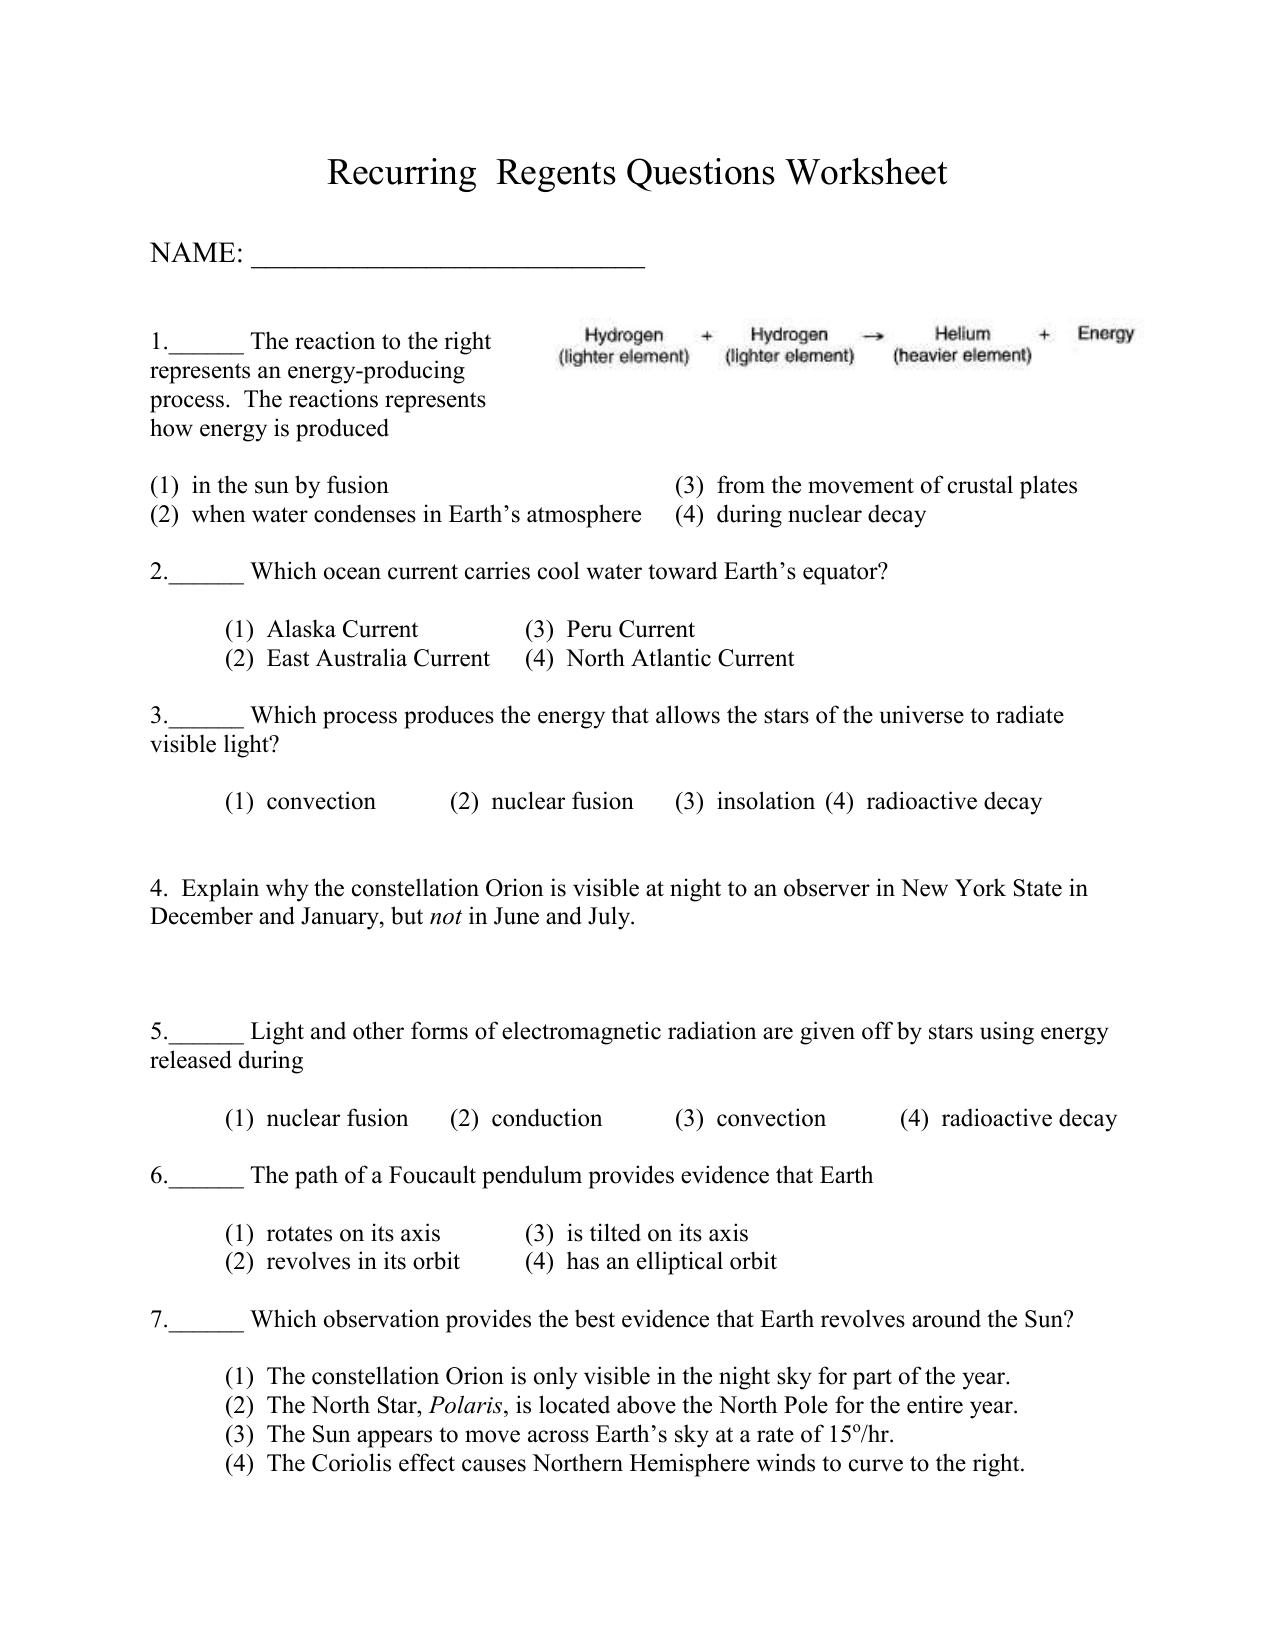 Review Worksheet On Recurring Regents Questions